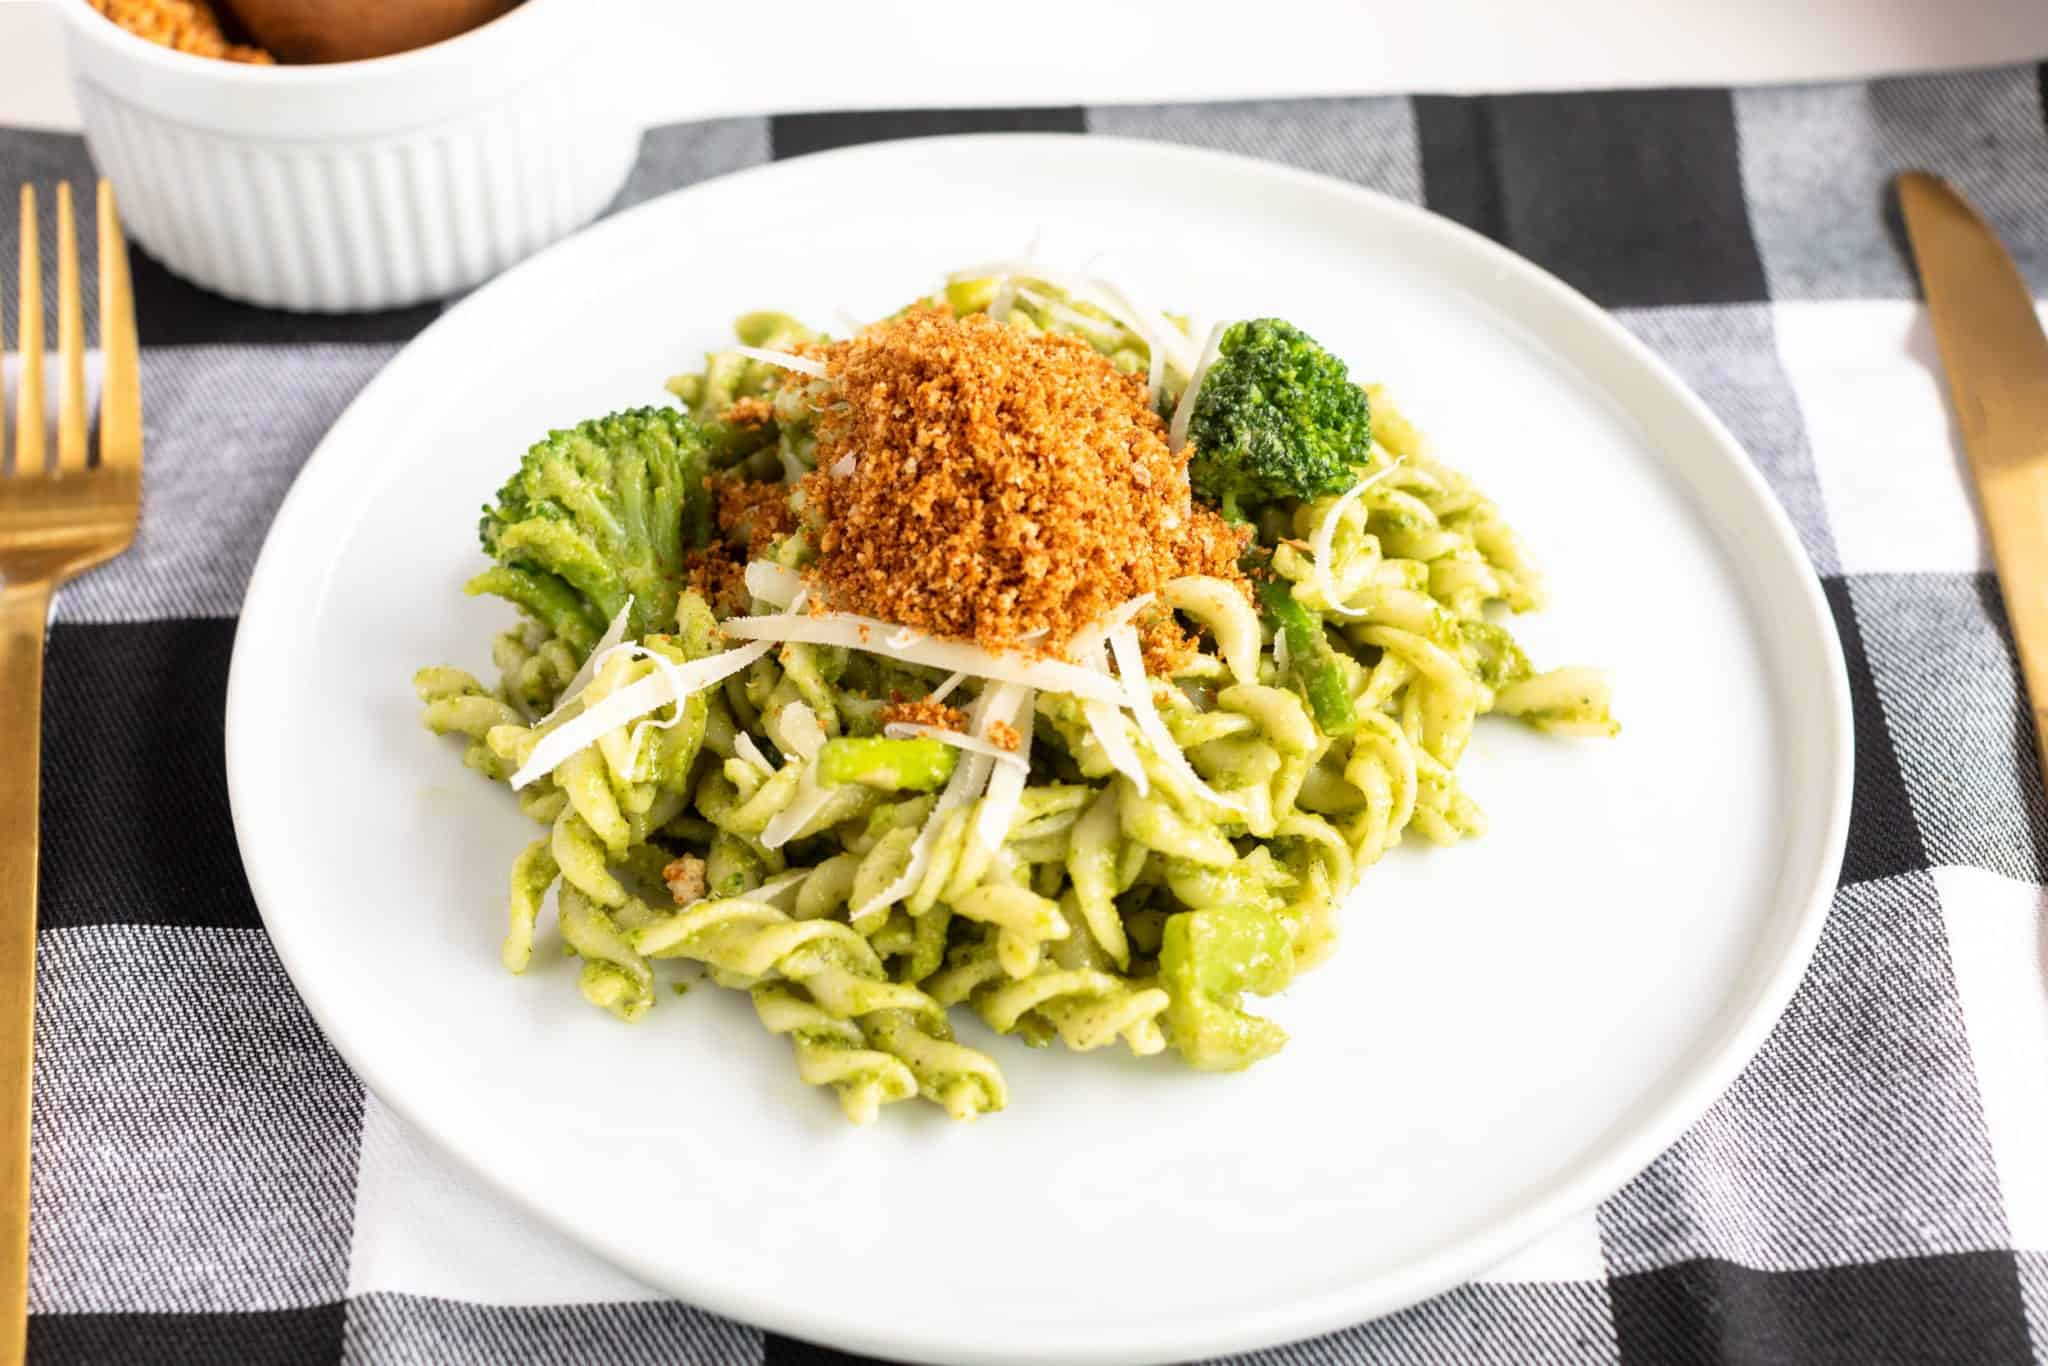 Fusilli Pasta & Fresh Basil Pesto with Toasted Breadcrumbs on white plate with plaid napkin and gold fork and knife. Additional toasted breadcrumbs served on the side. #pestopasta #easyrecipes #fusilli #greenrecipes #weeknightrecipes #pastadish #pasta #breadcrumbs #massimobottura